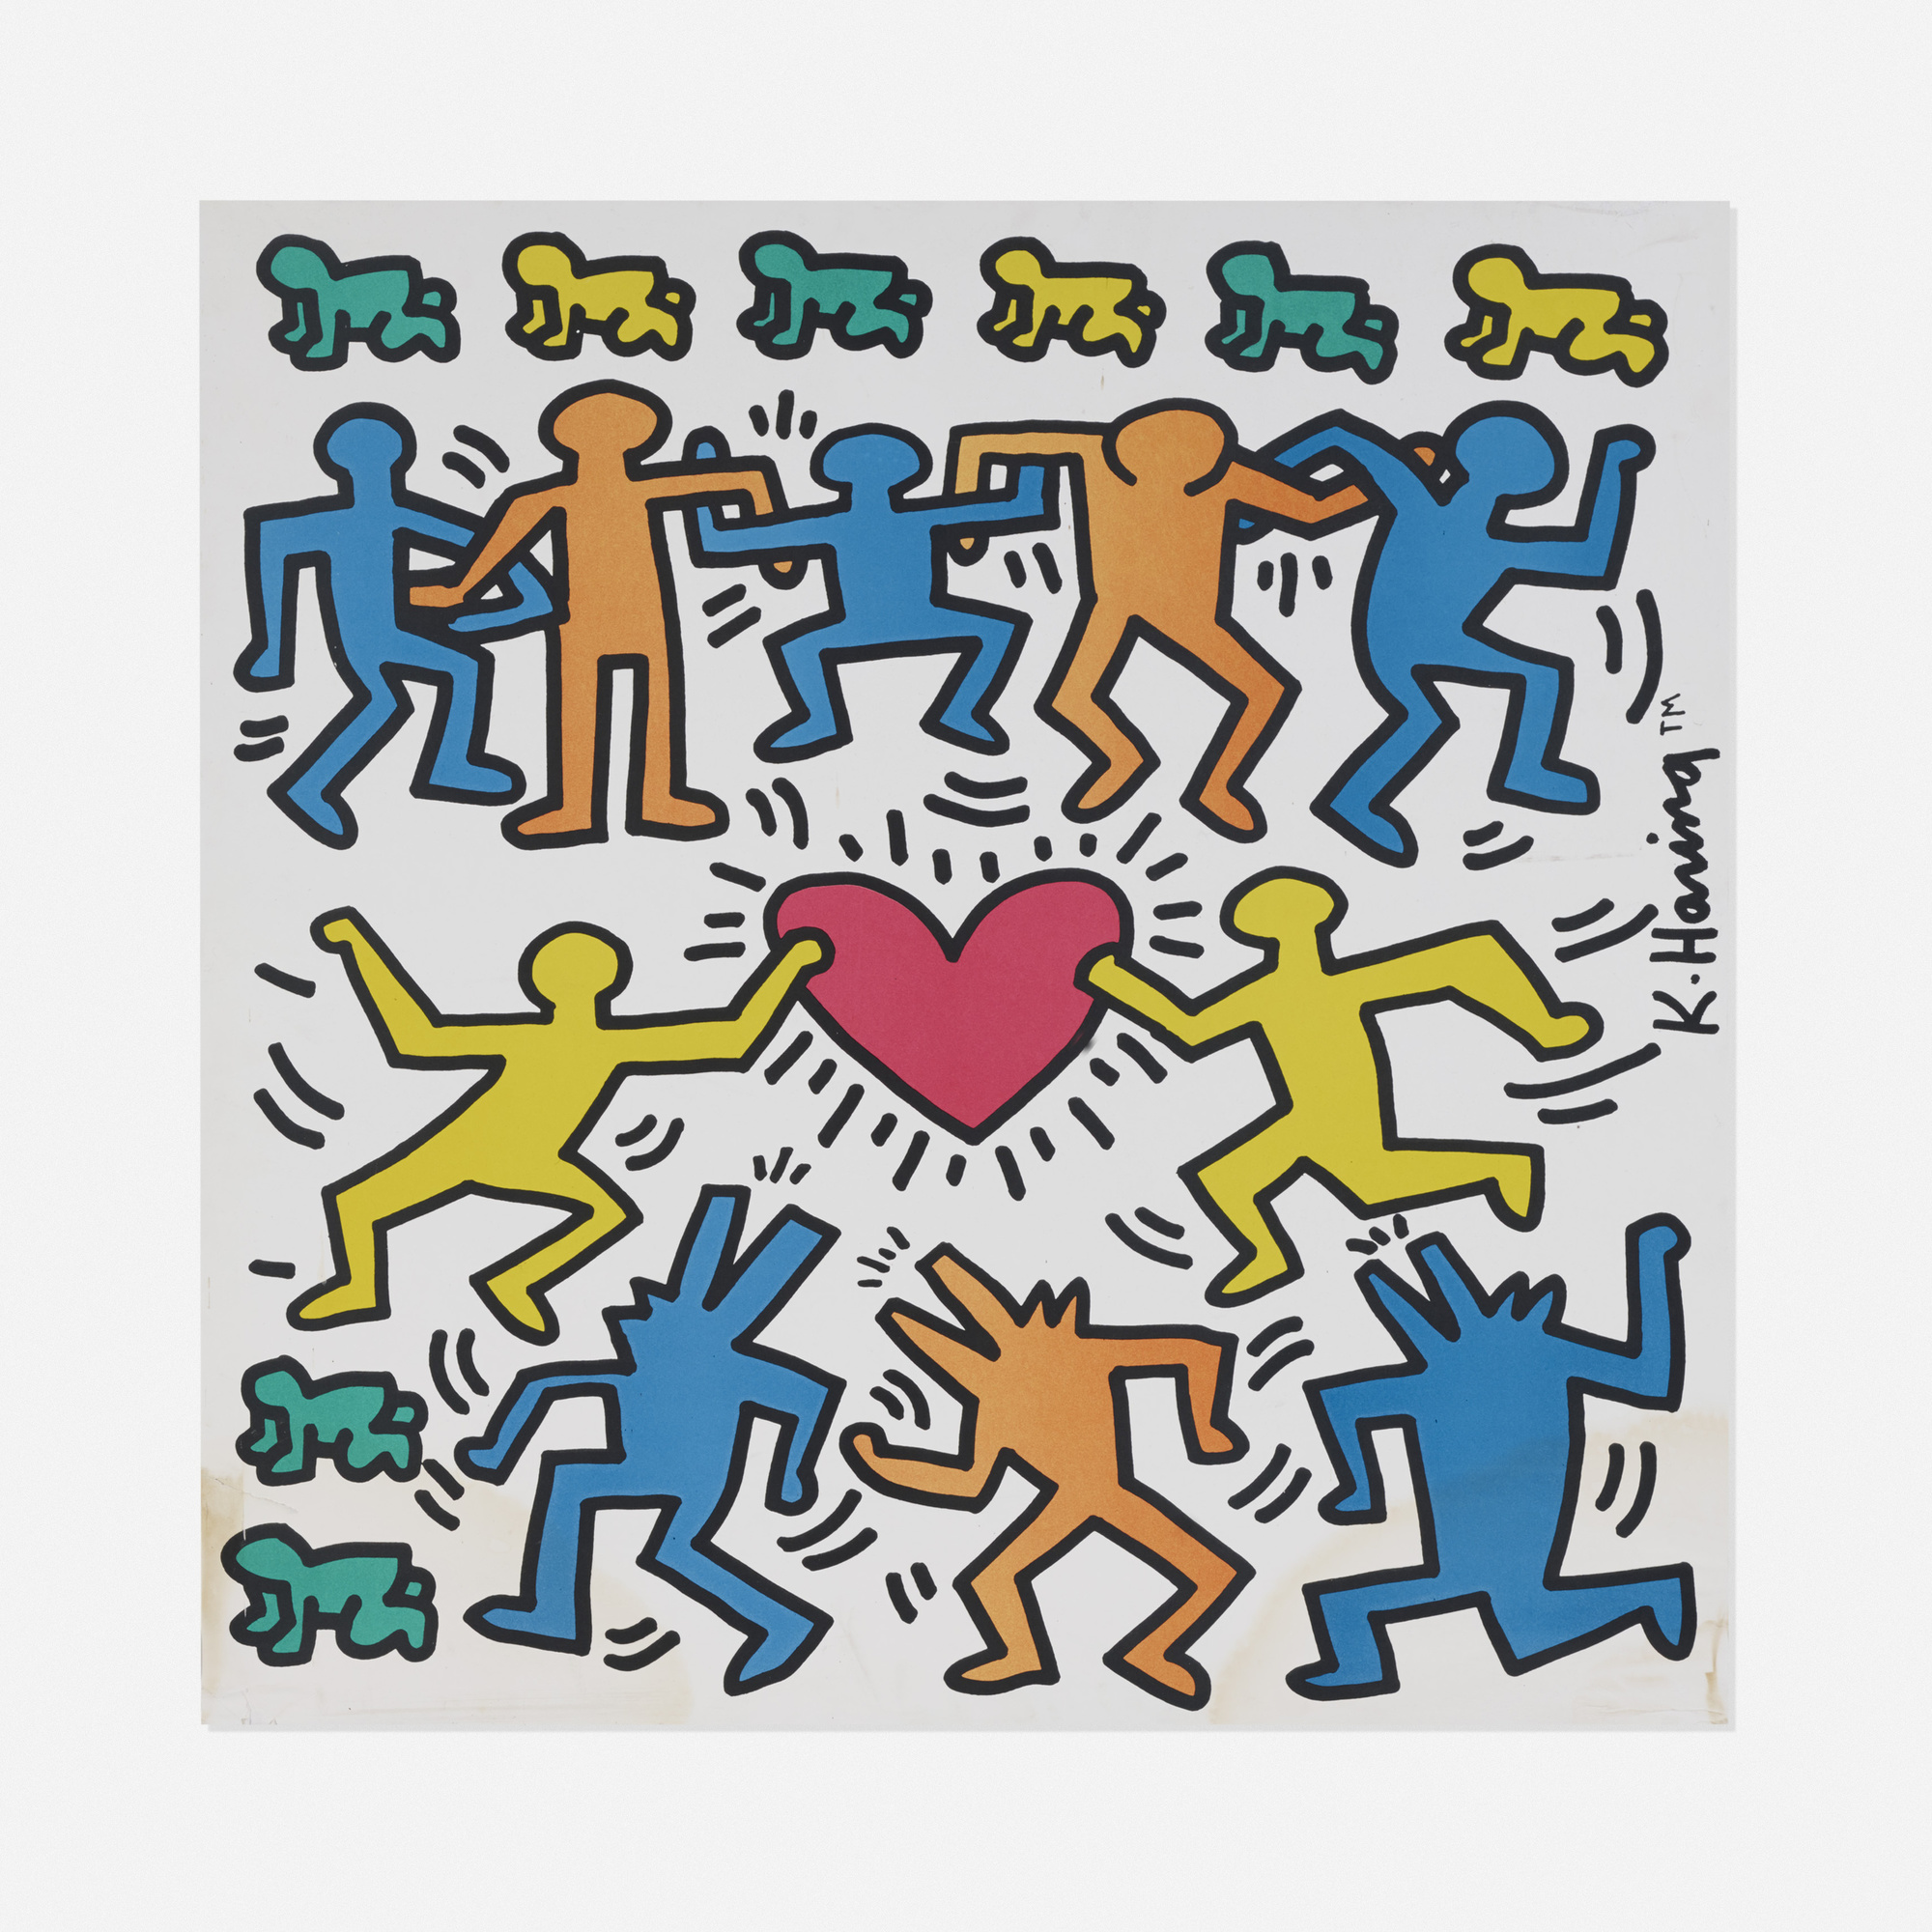 318: Keith Haring / Untitled poster (1 of 1)